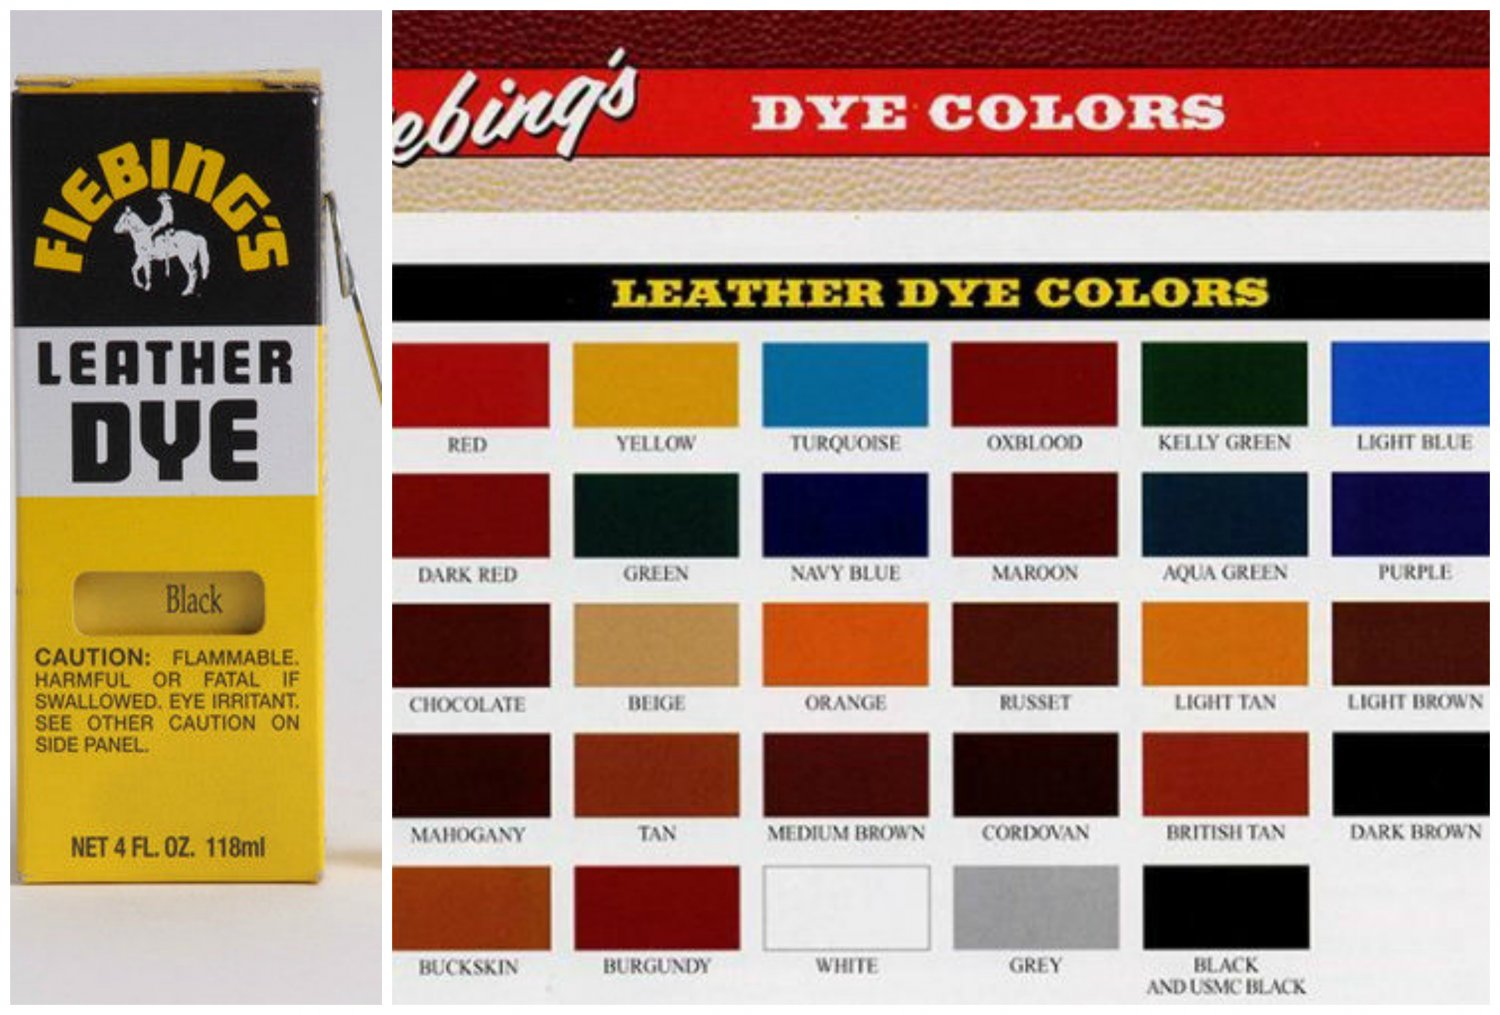 cb54c3691455 Fiebings Leather Dye 4 oz. with Applicator Shoes Boots Bag Turquoise Color